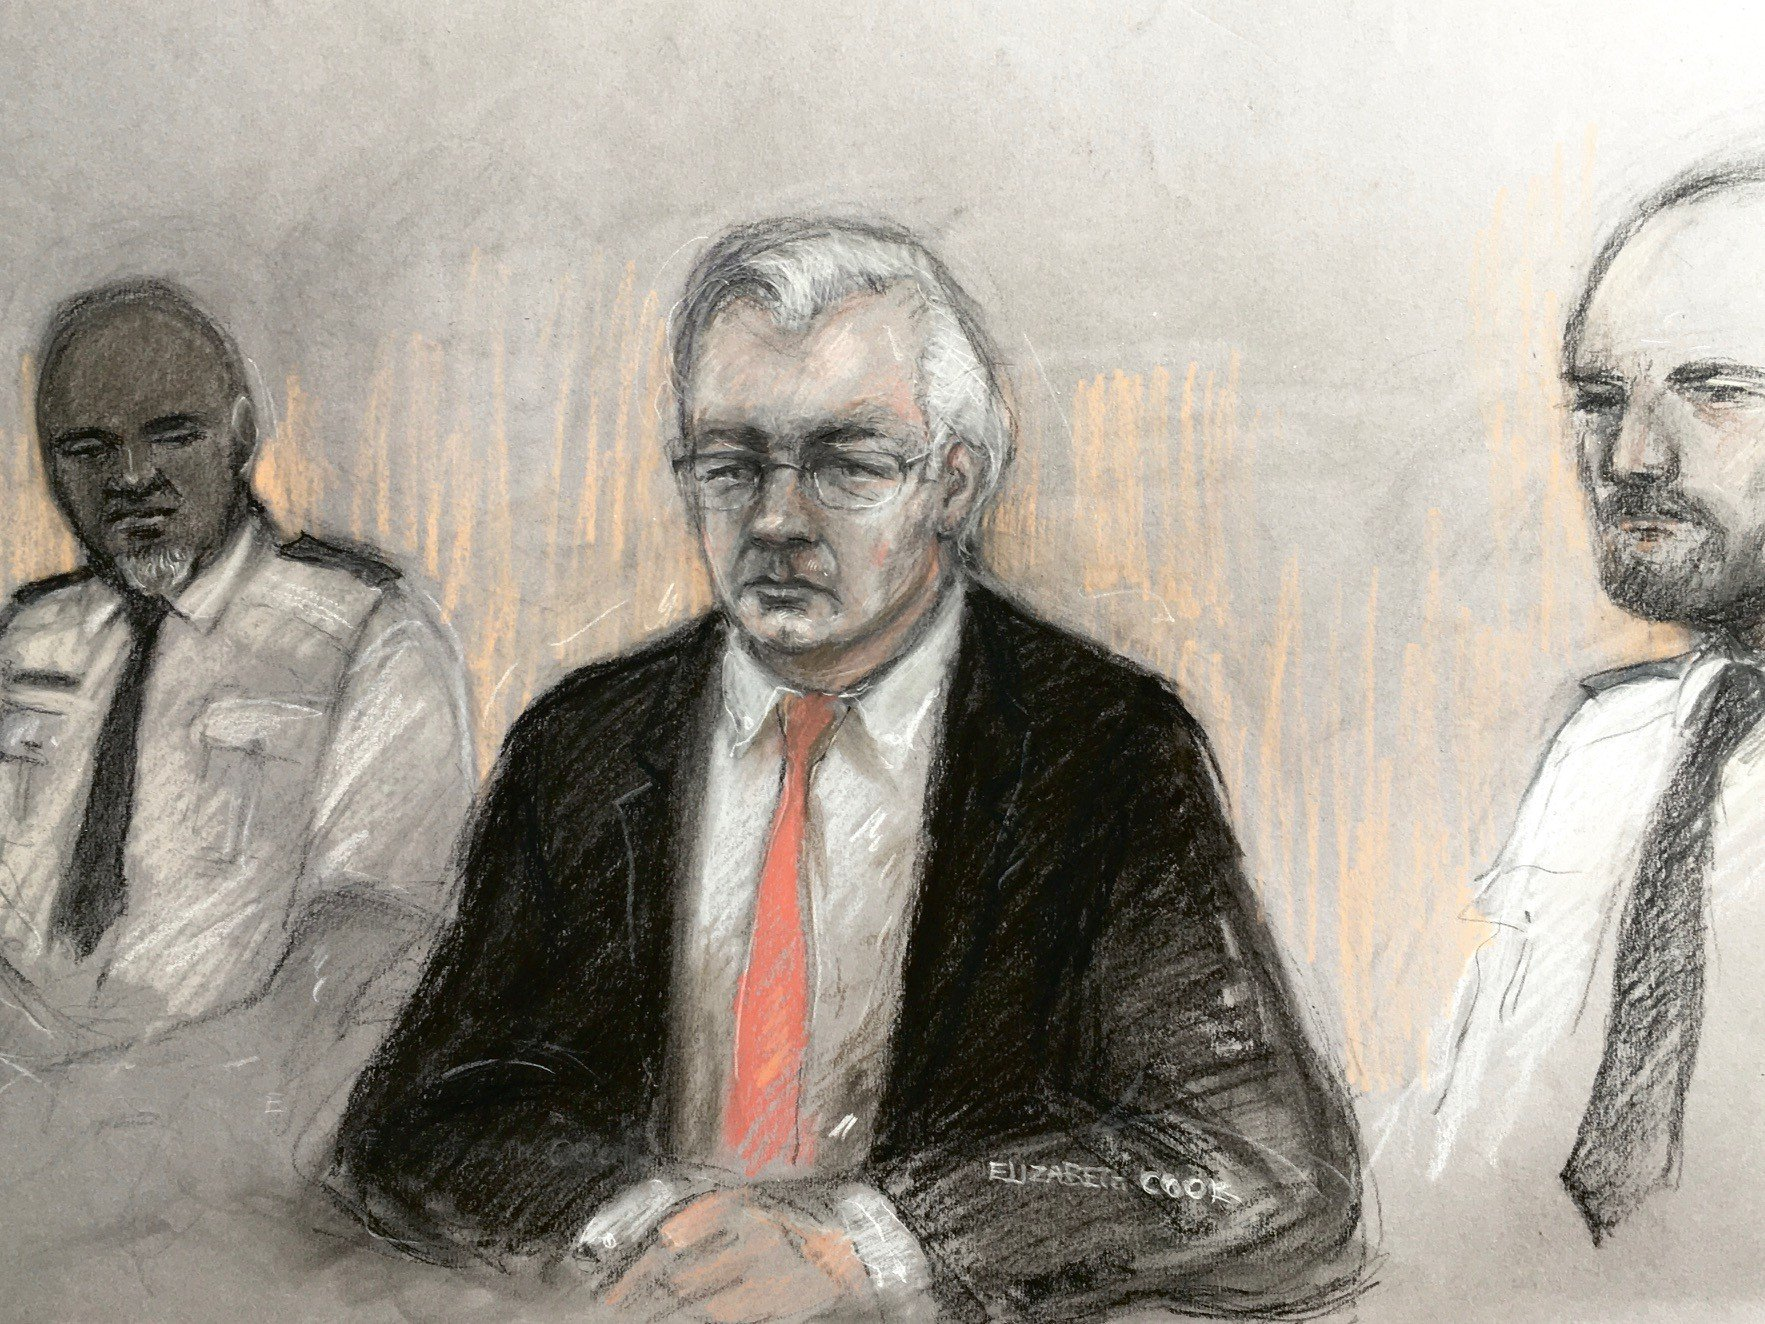 dibujo juicio julian assange - europa press